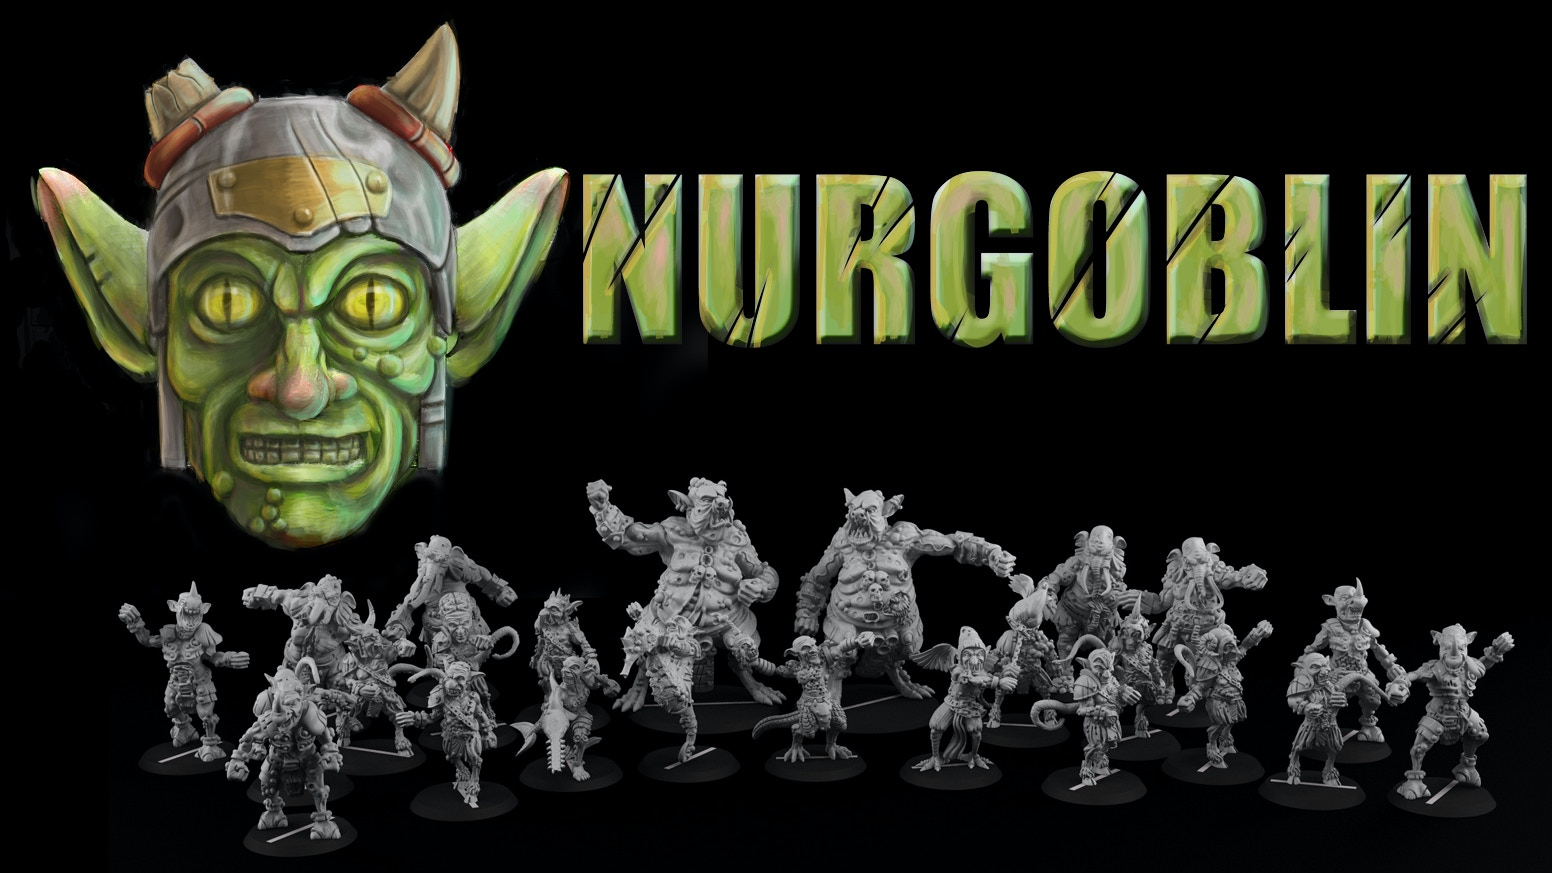 """Bad, stinky and ugly! Here it is, our team of 28mm and 35mm miniatures for fantasy football. Putrids and Goblins!"